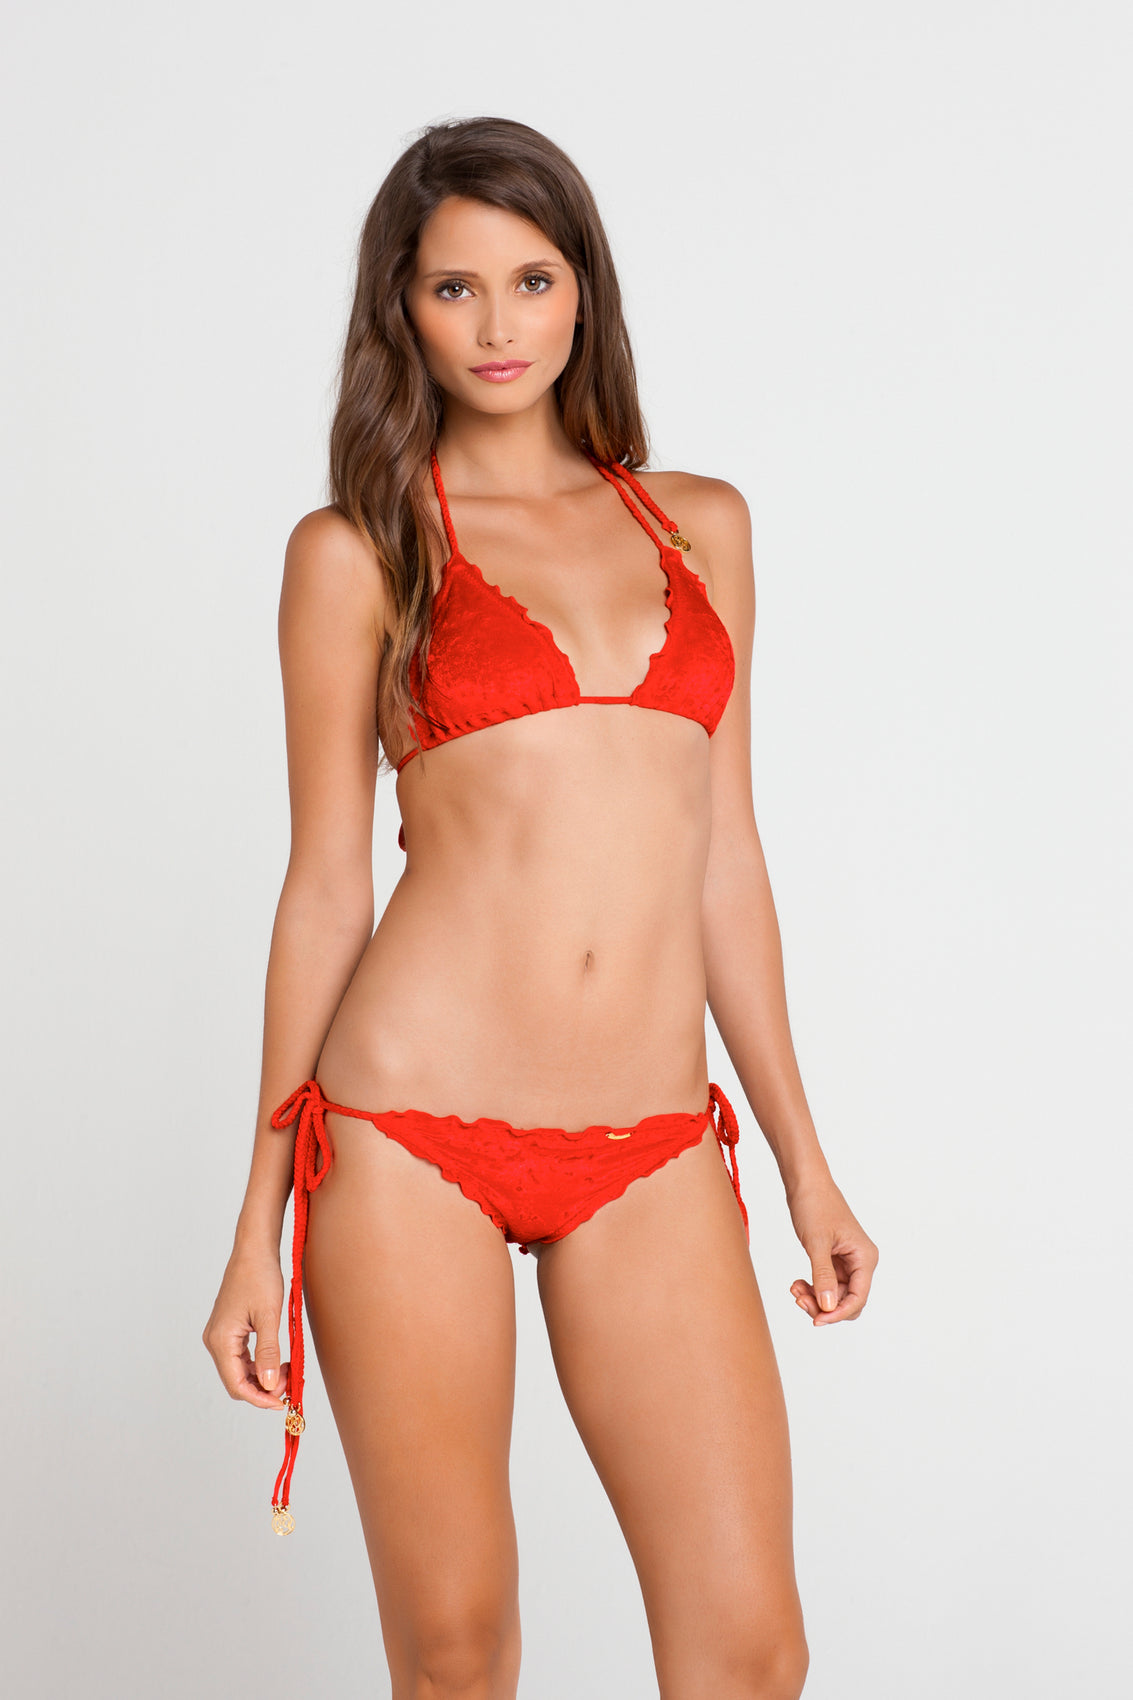 COSQUILLITAS - Wavey Triangle Top & Wavey Ruched Back Full Tie Side Bottom • Scarlet